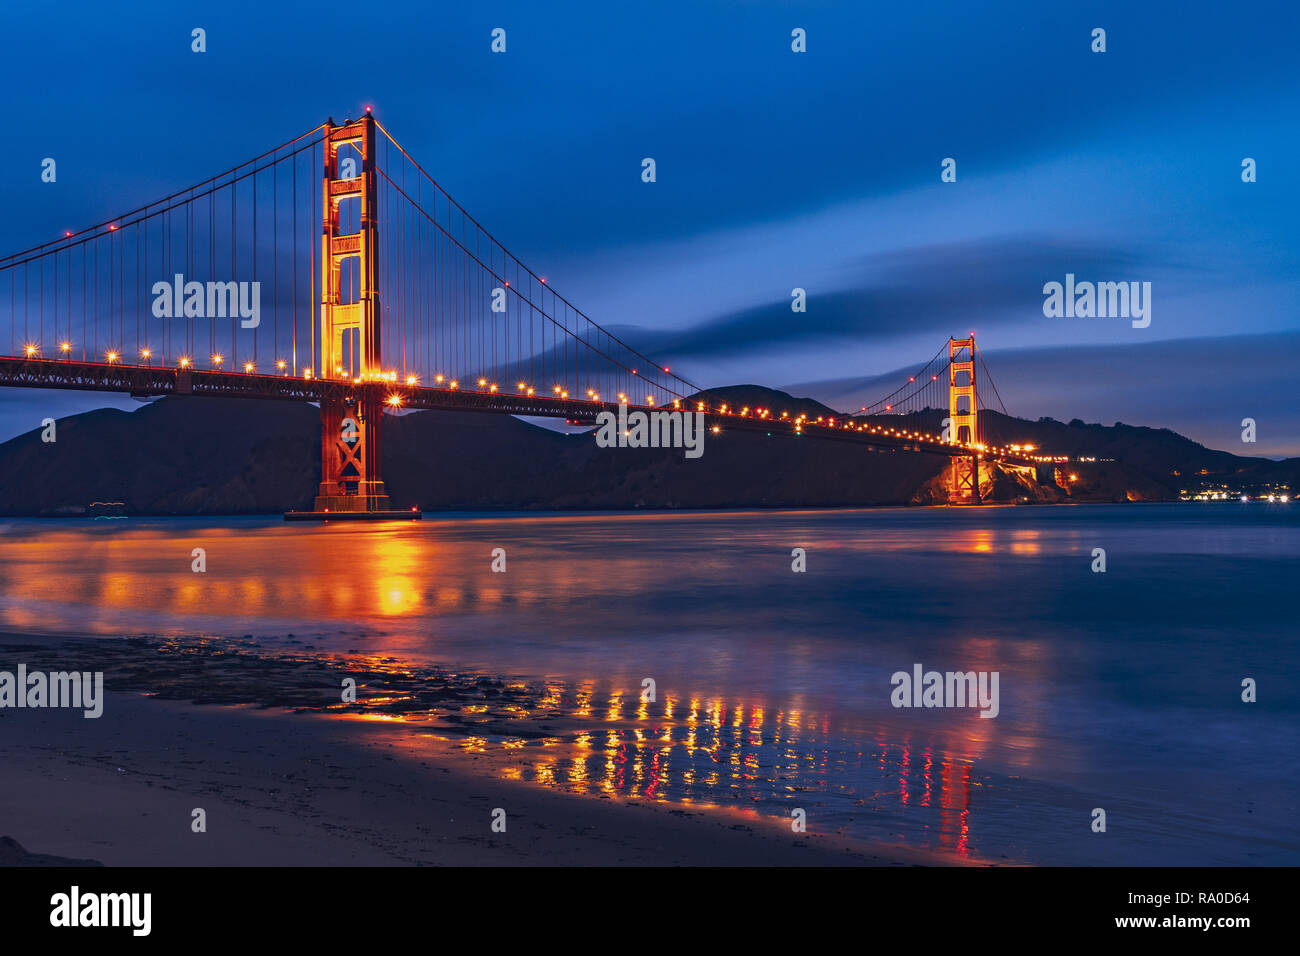 Nighttime view of Golden Gate Bridge reflected in the blurred water surface of San Francisco bay, dark blue sky background; California - Stock Image